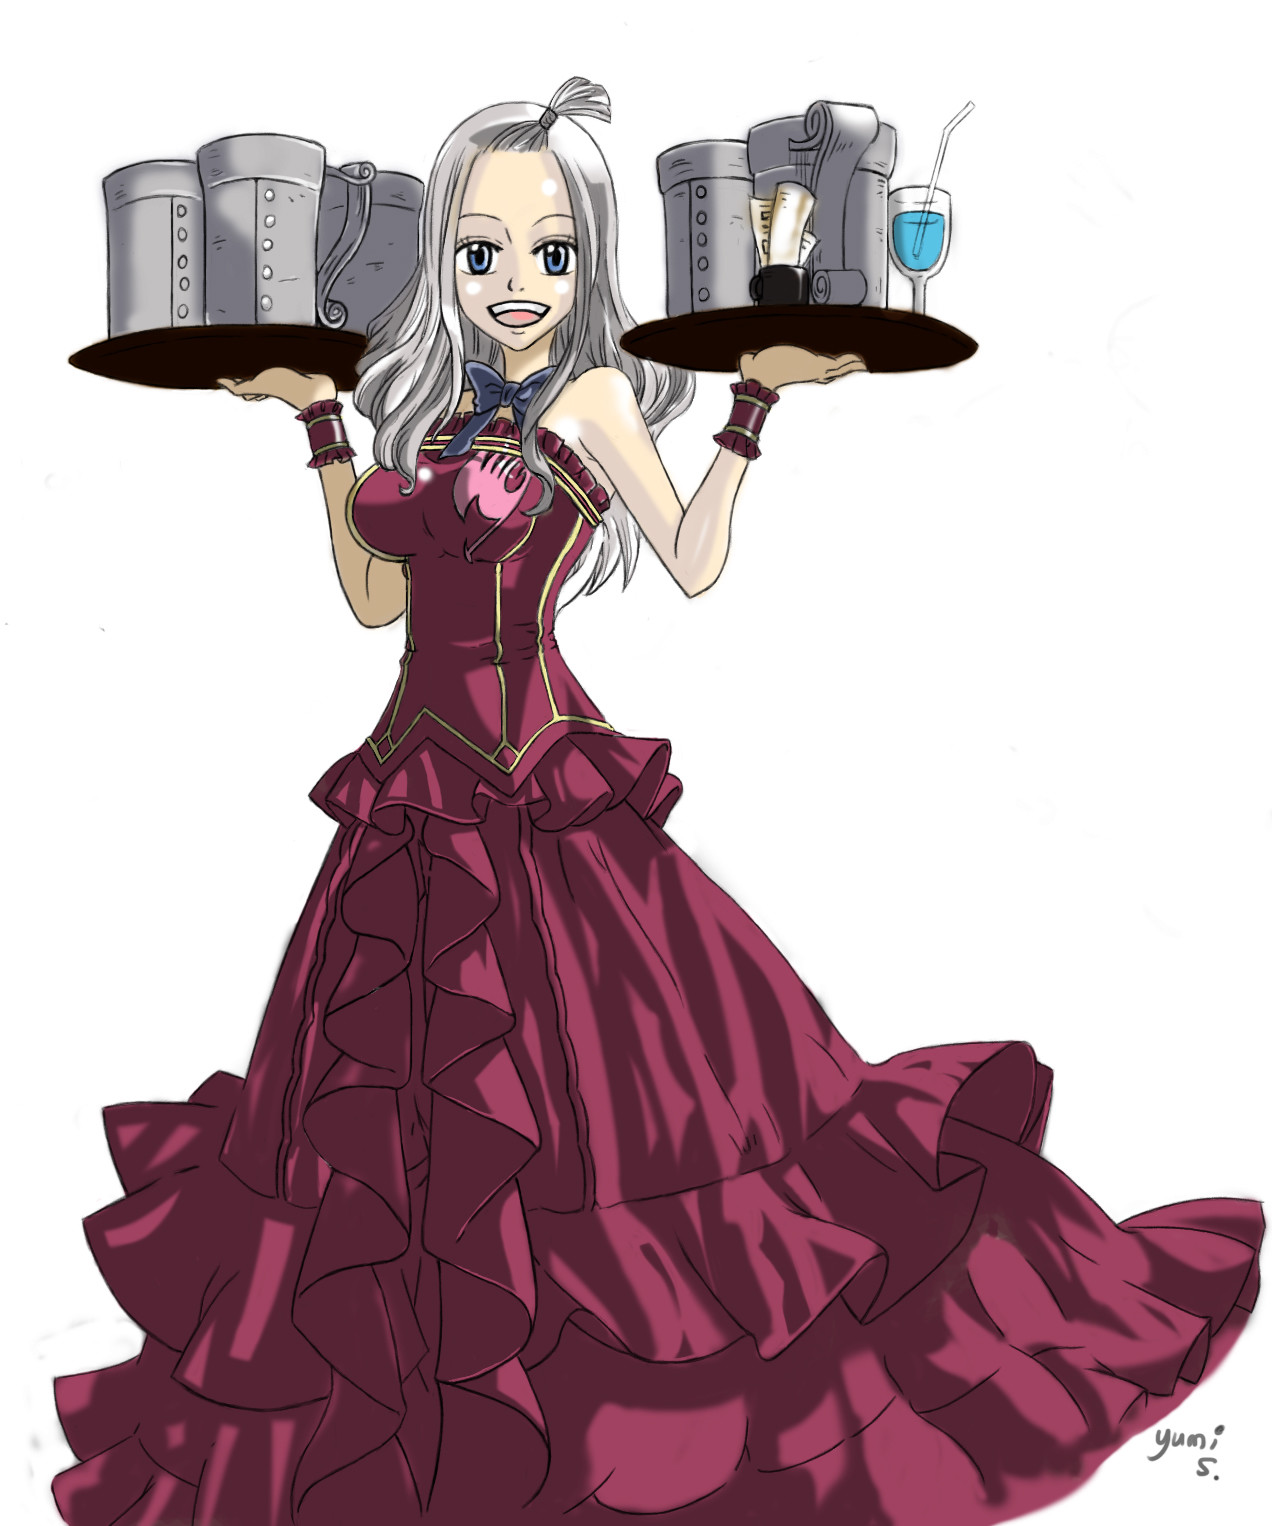 Tayanne Yumi Mirajane Strauss Fairy Tail Fanart #fairy tail #mirajane strauss #mirajane #ftgraphics #this is what i was originally planning to do #well ahhh you actually messaged me as i was working on the first mirajane one so perfect timing xd…? tayanne yumi mirajane strauss fairy